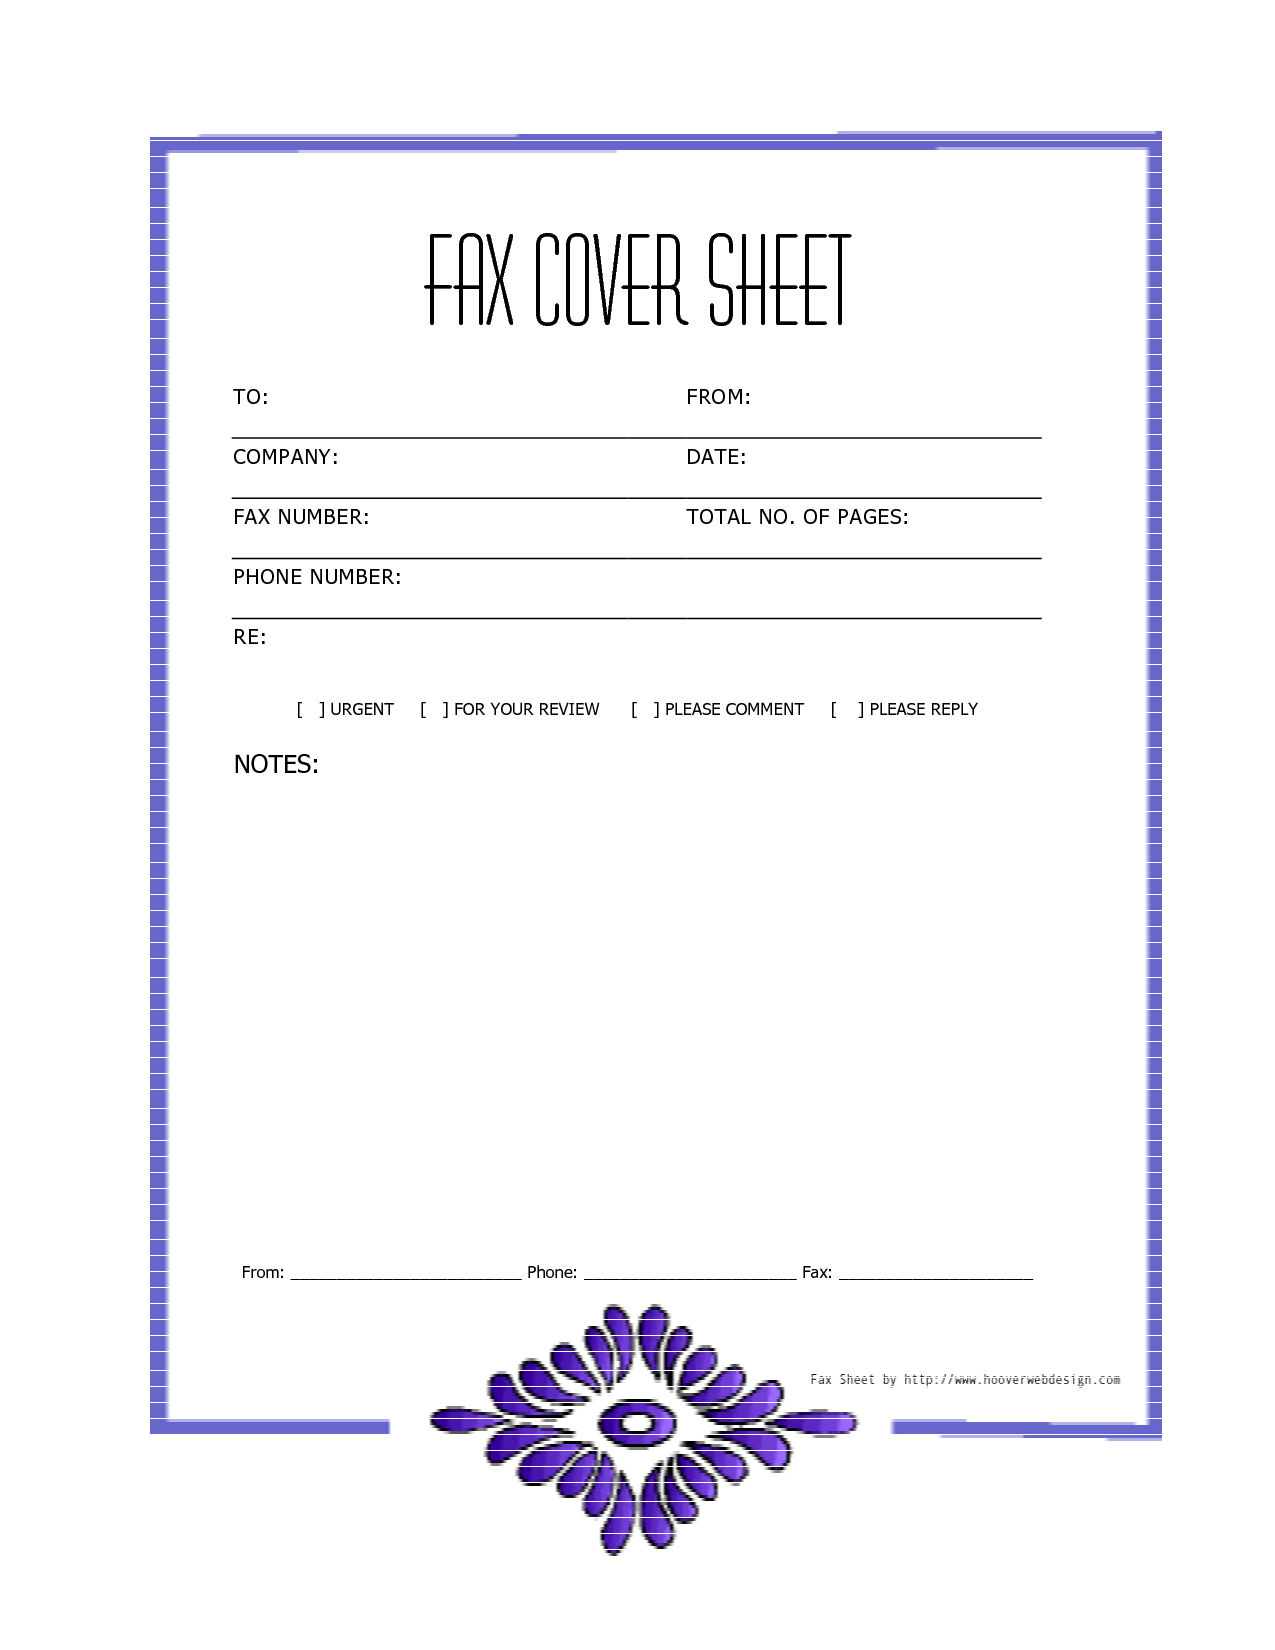 Free Fax Cover Letter Template Word - Free Downloads Fax Covers Sheets